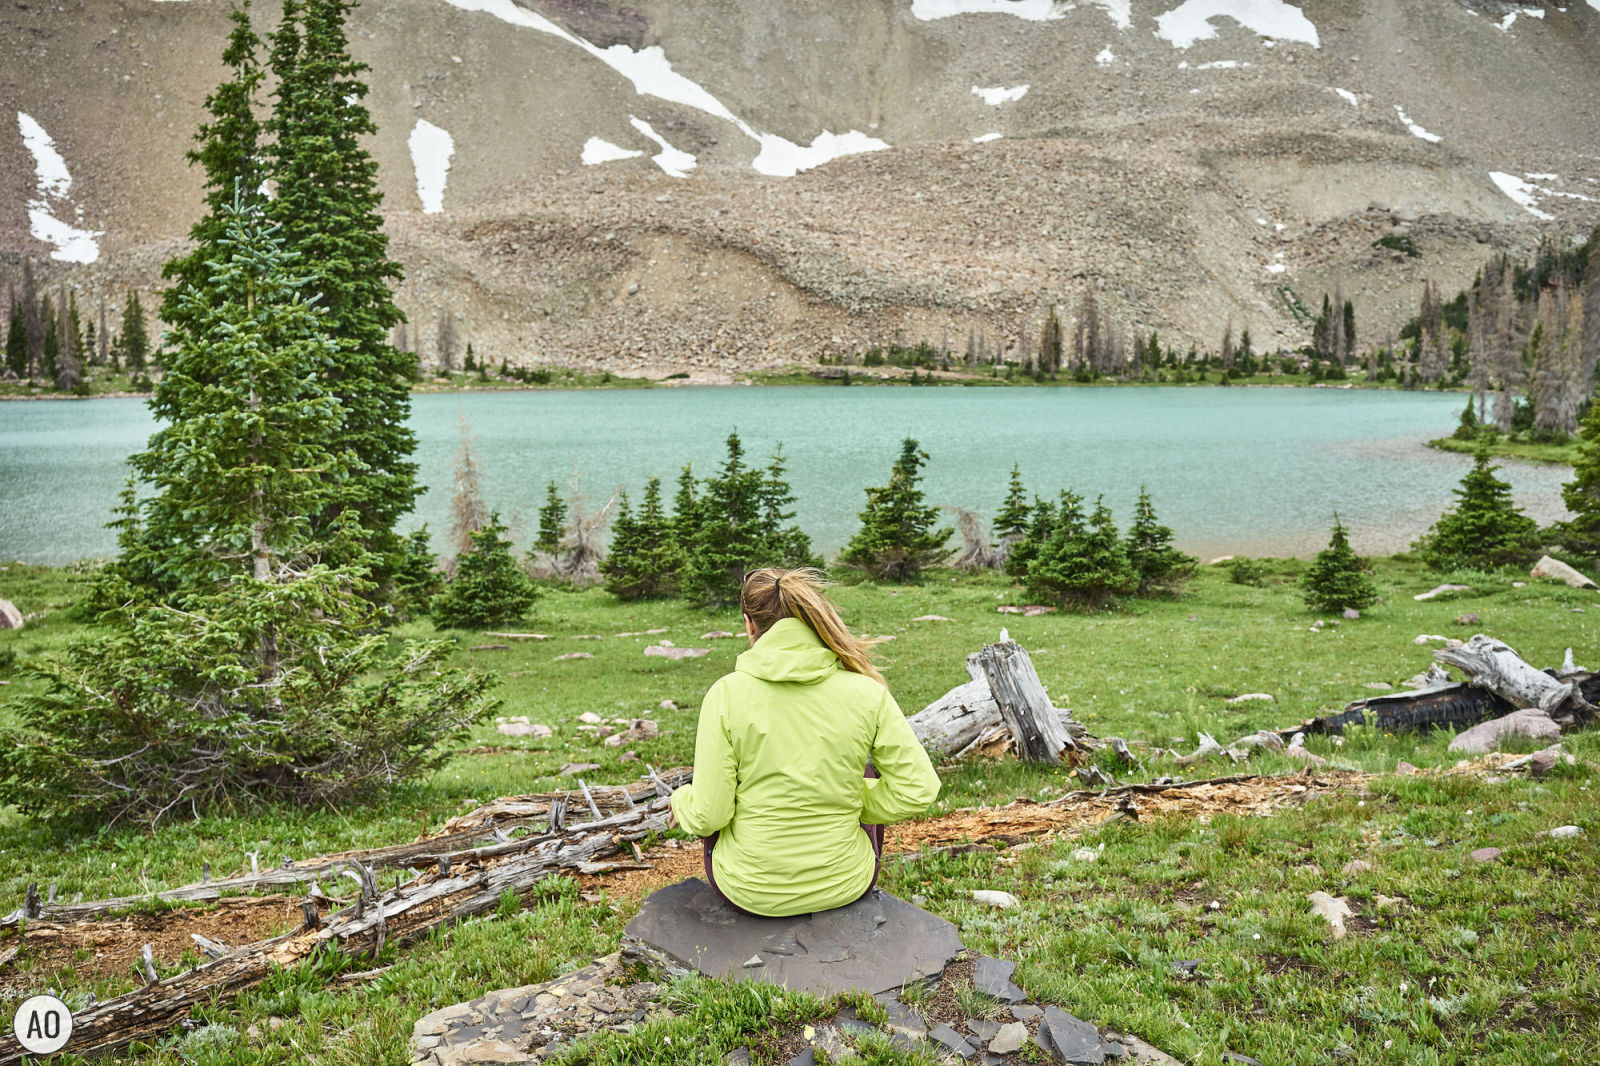 A peaceful moment in the backcountry. If you've ever wondered what it's like to go backpacking, check out this backpacker lifestyle post where I show you exactly what it's like to have a day off in the backcountry. www.amandaoutside.com